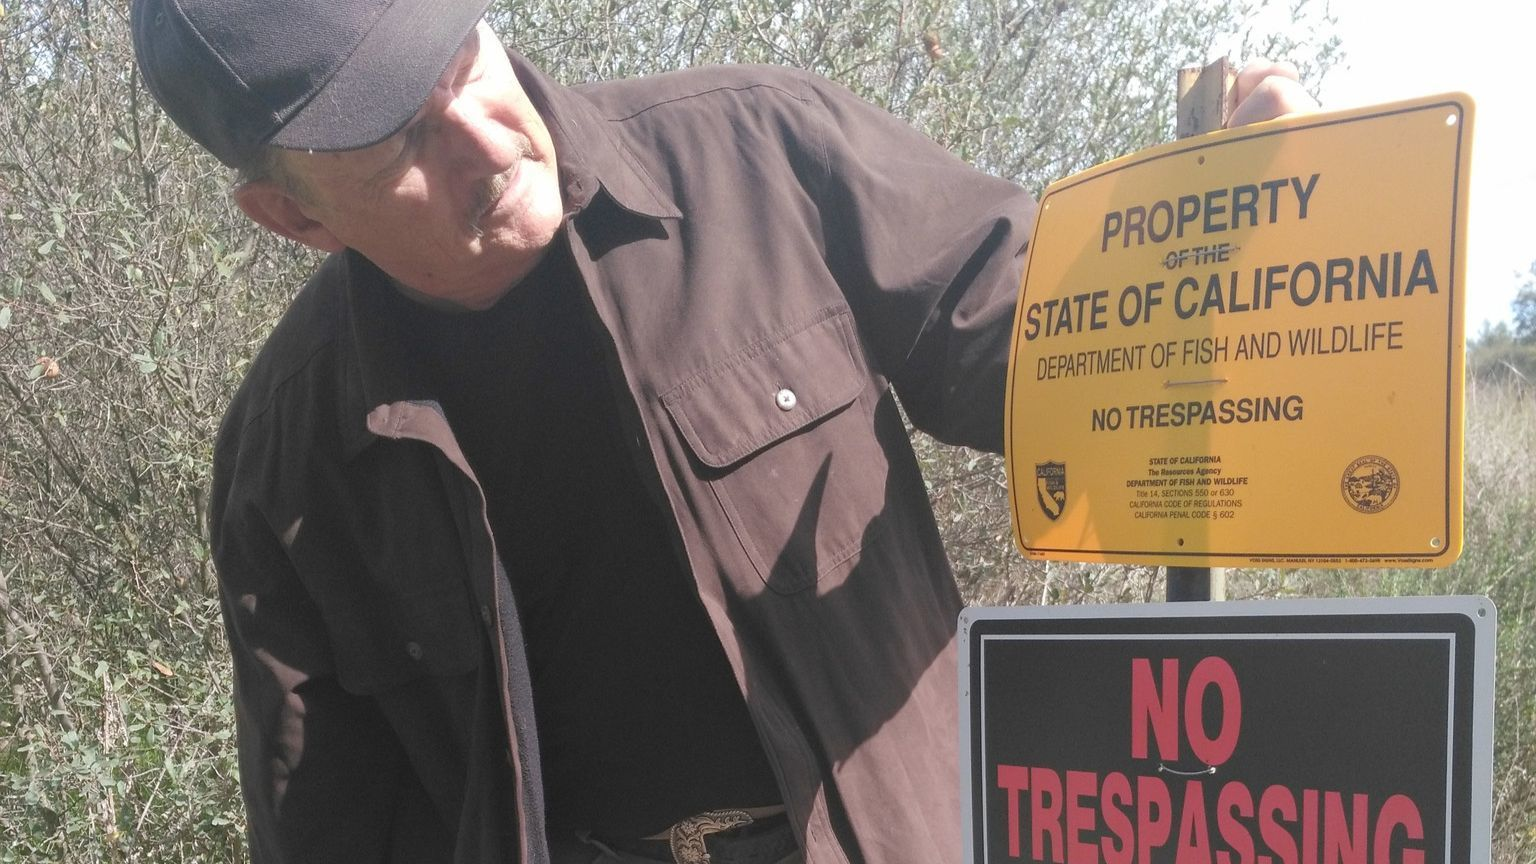 """Ramona residents Ed Sapeth and John Degenfelder are frustrated that """"No Trespassing"""" signs prevent the public from using at least part of Canada de San Vicente property for hikin"""